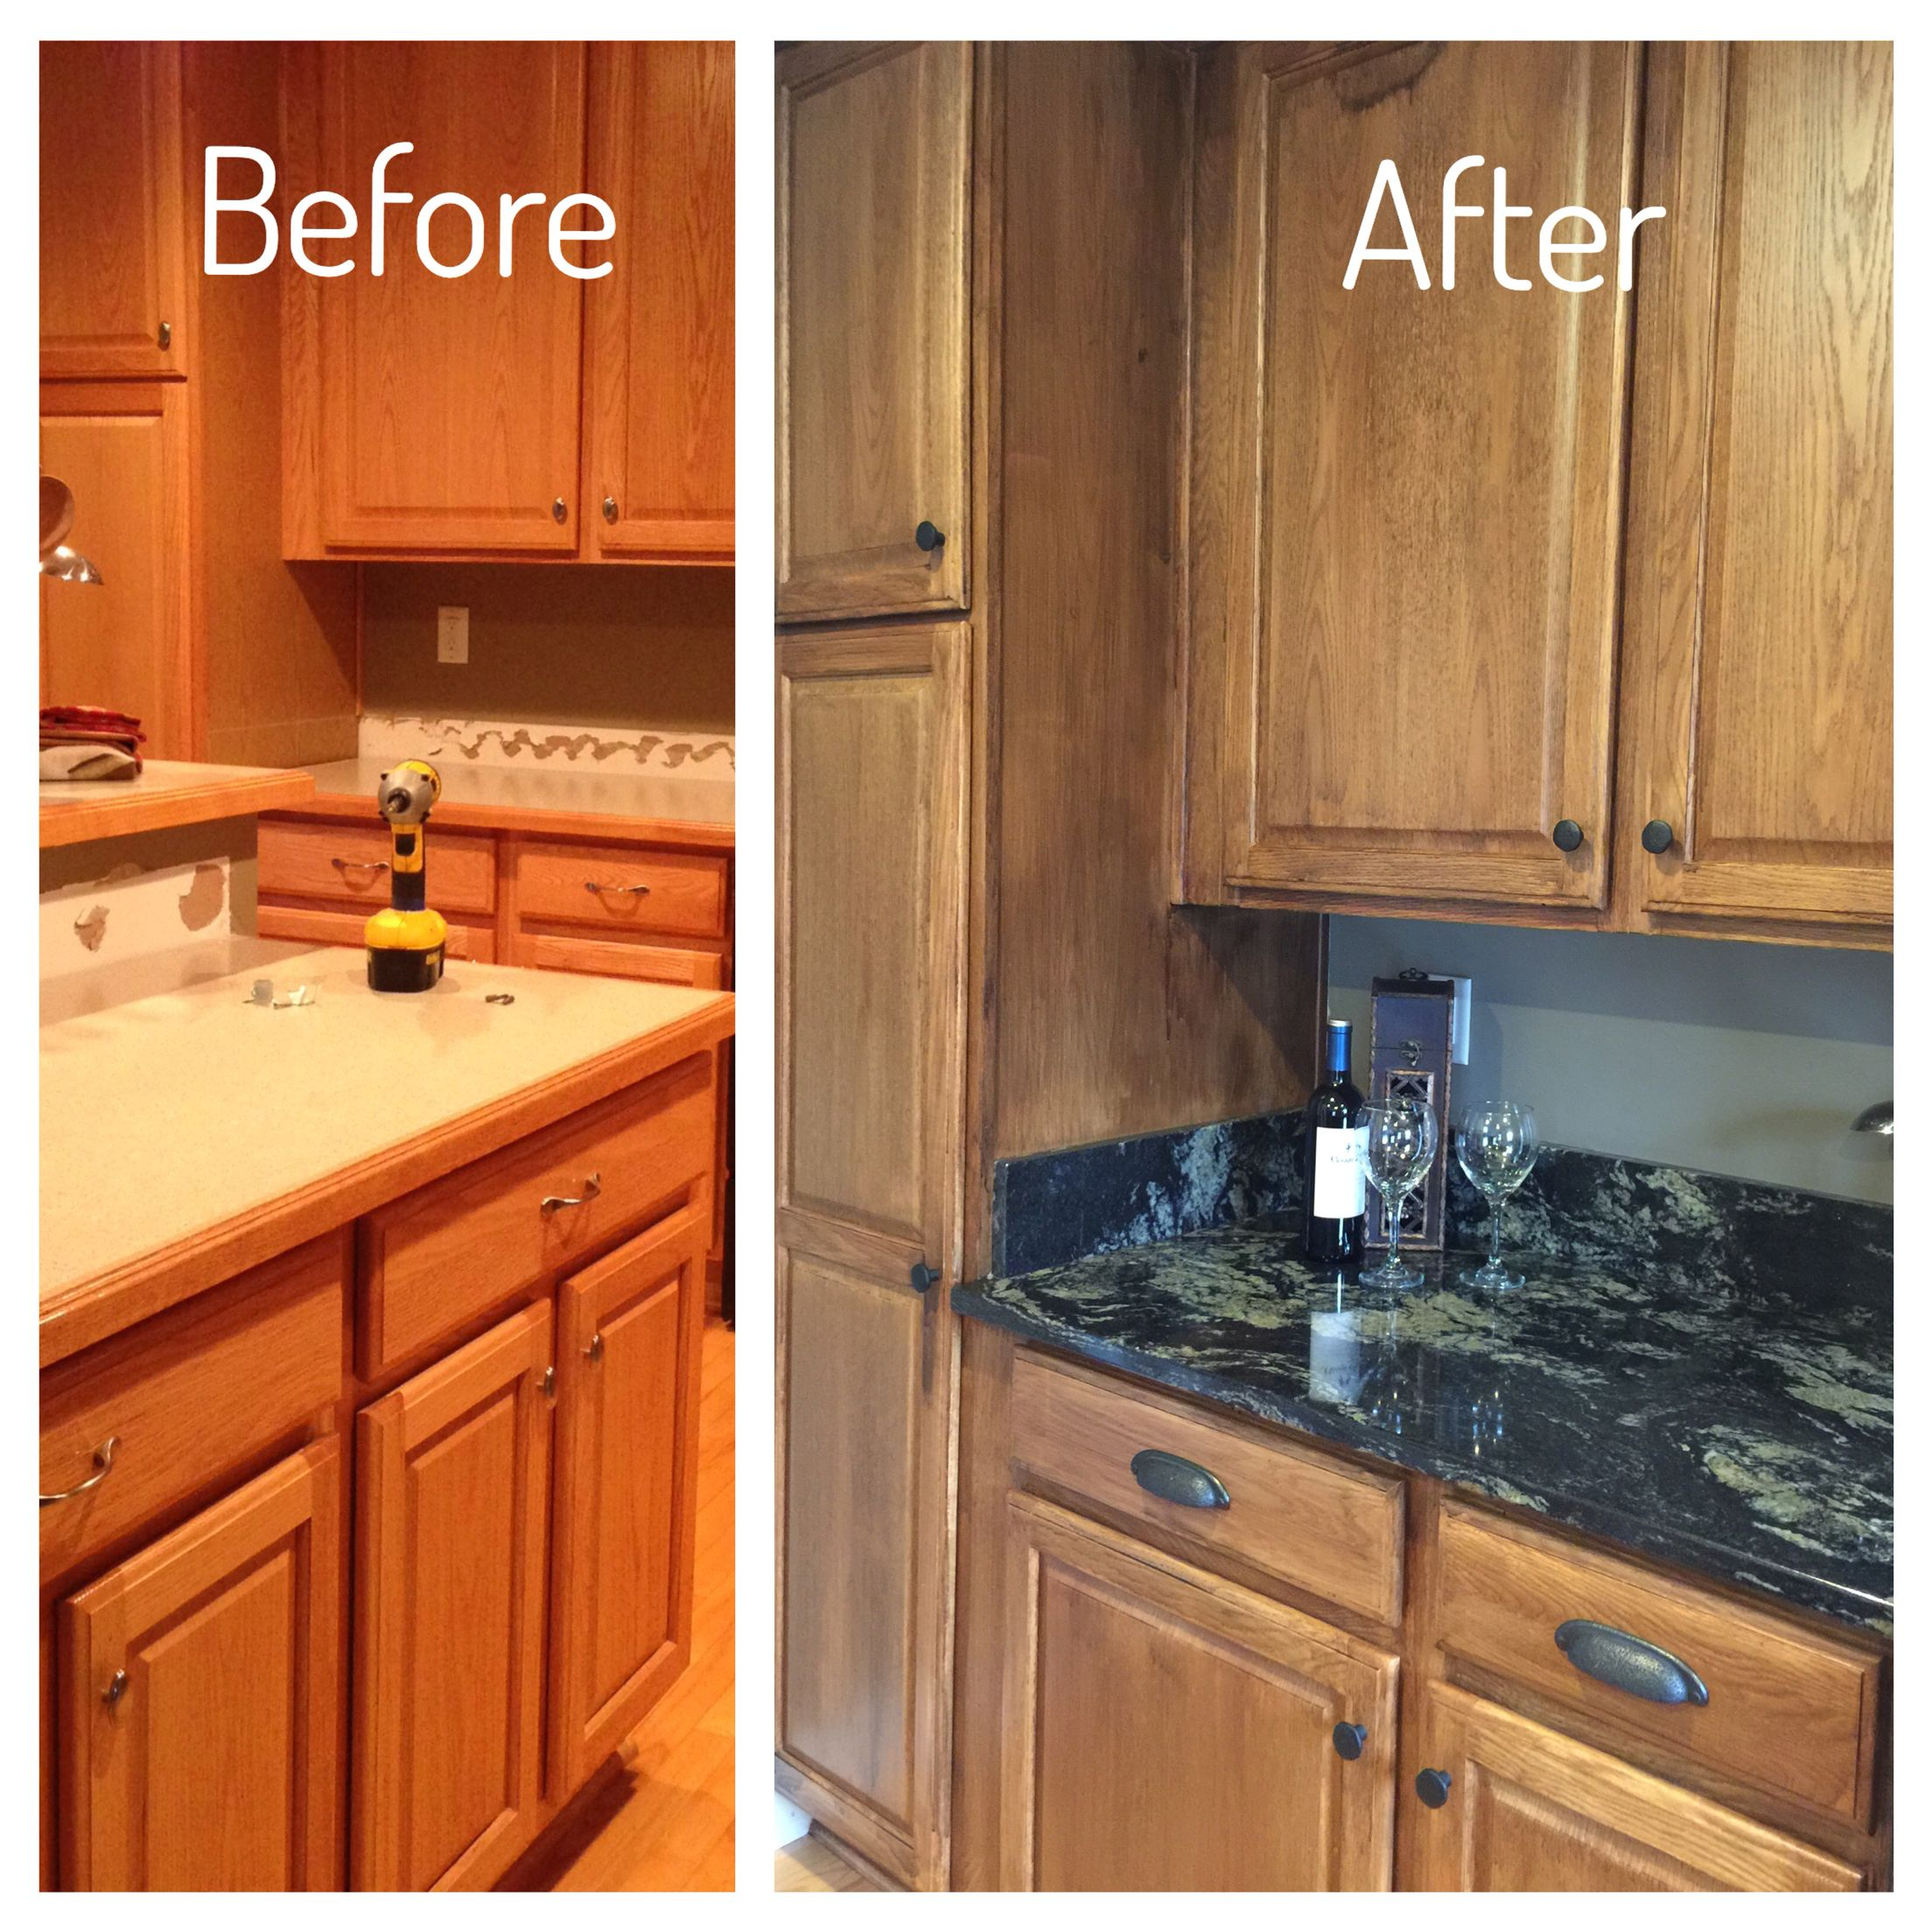 Kitchen Cabinet Stain Ideas: Kitchen Cabinet Makeover. 2 Coats Of Minwax PolyShade